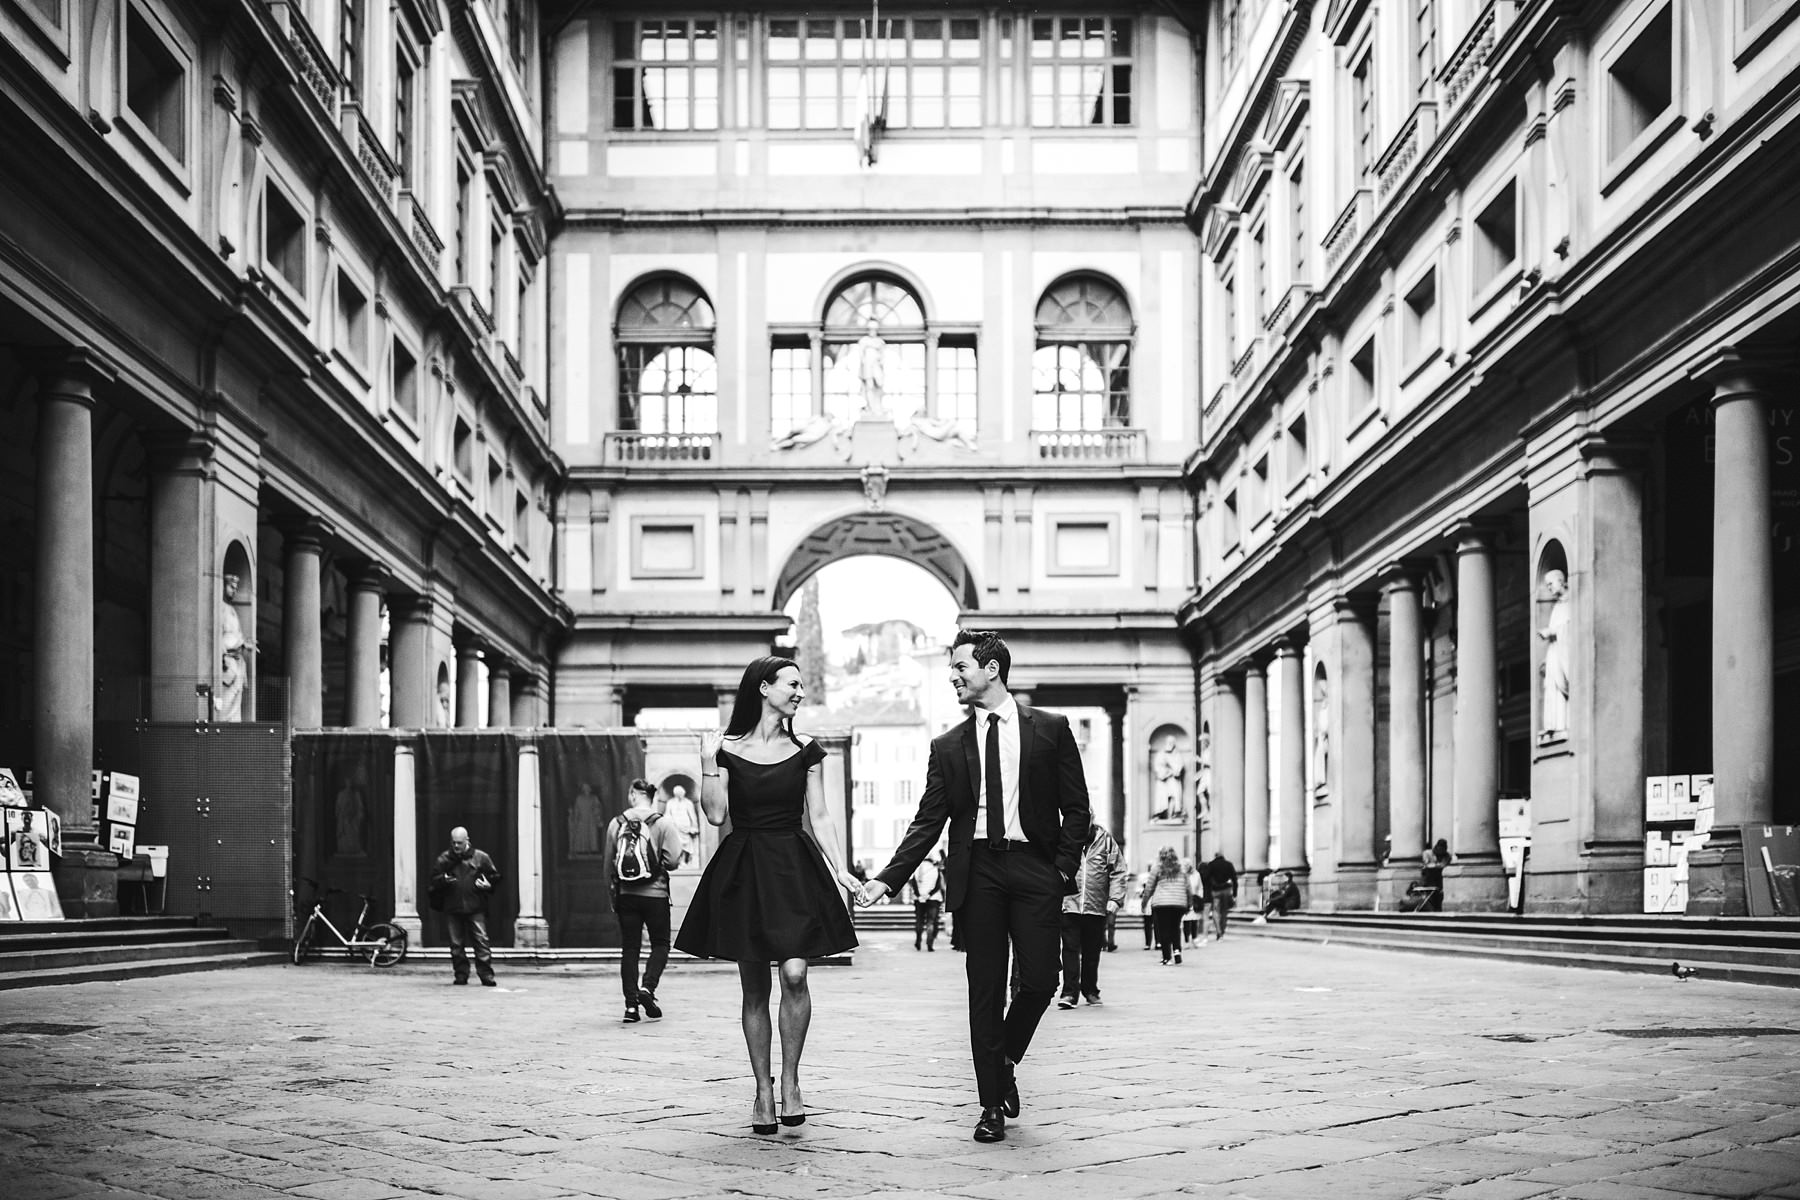 Incredible engagement photo session. Stylish photo at the iconic Uffizi Art Gallery. Michelle and Brent looks like two elegant and dazzling movie stars!